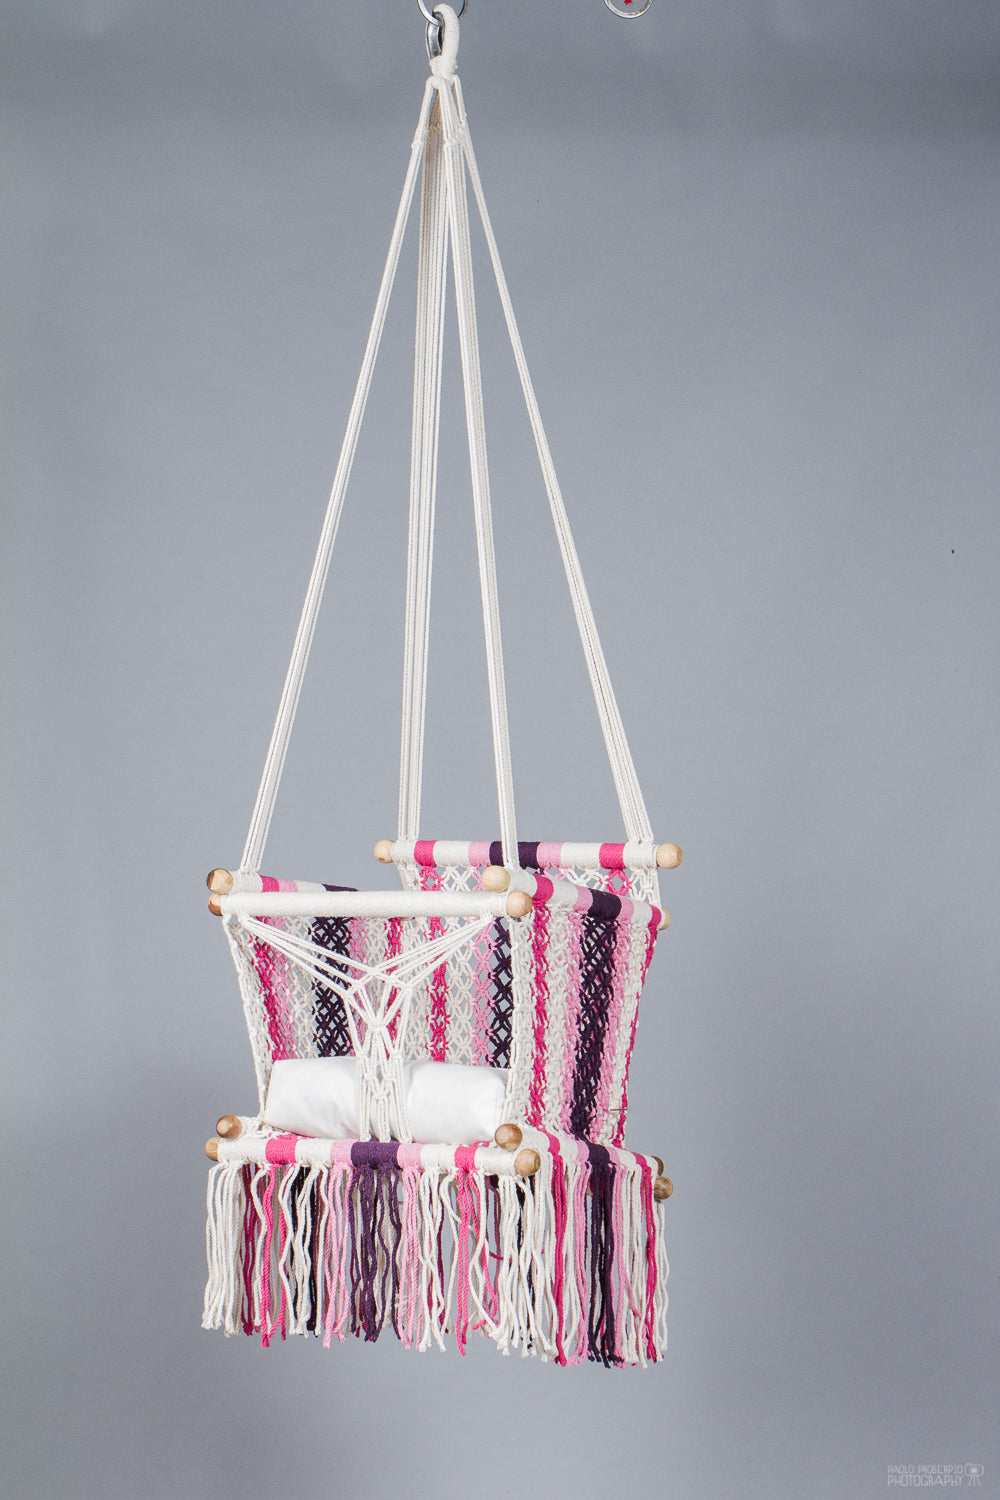 Baby Swing Chair in different pinks and cream / light wood (made on order)